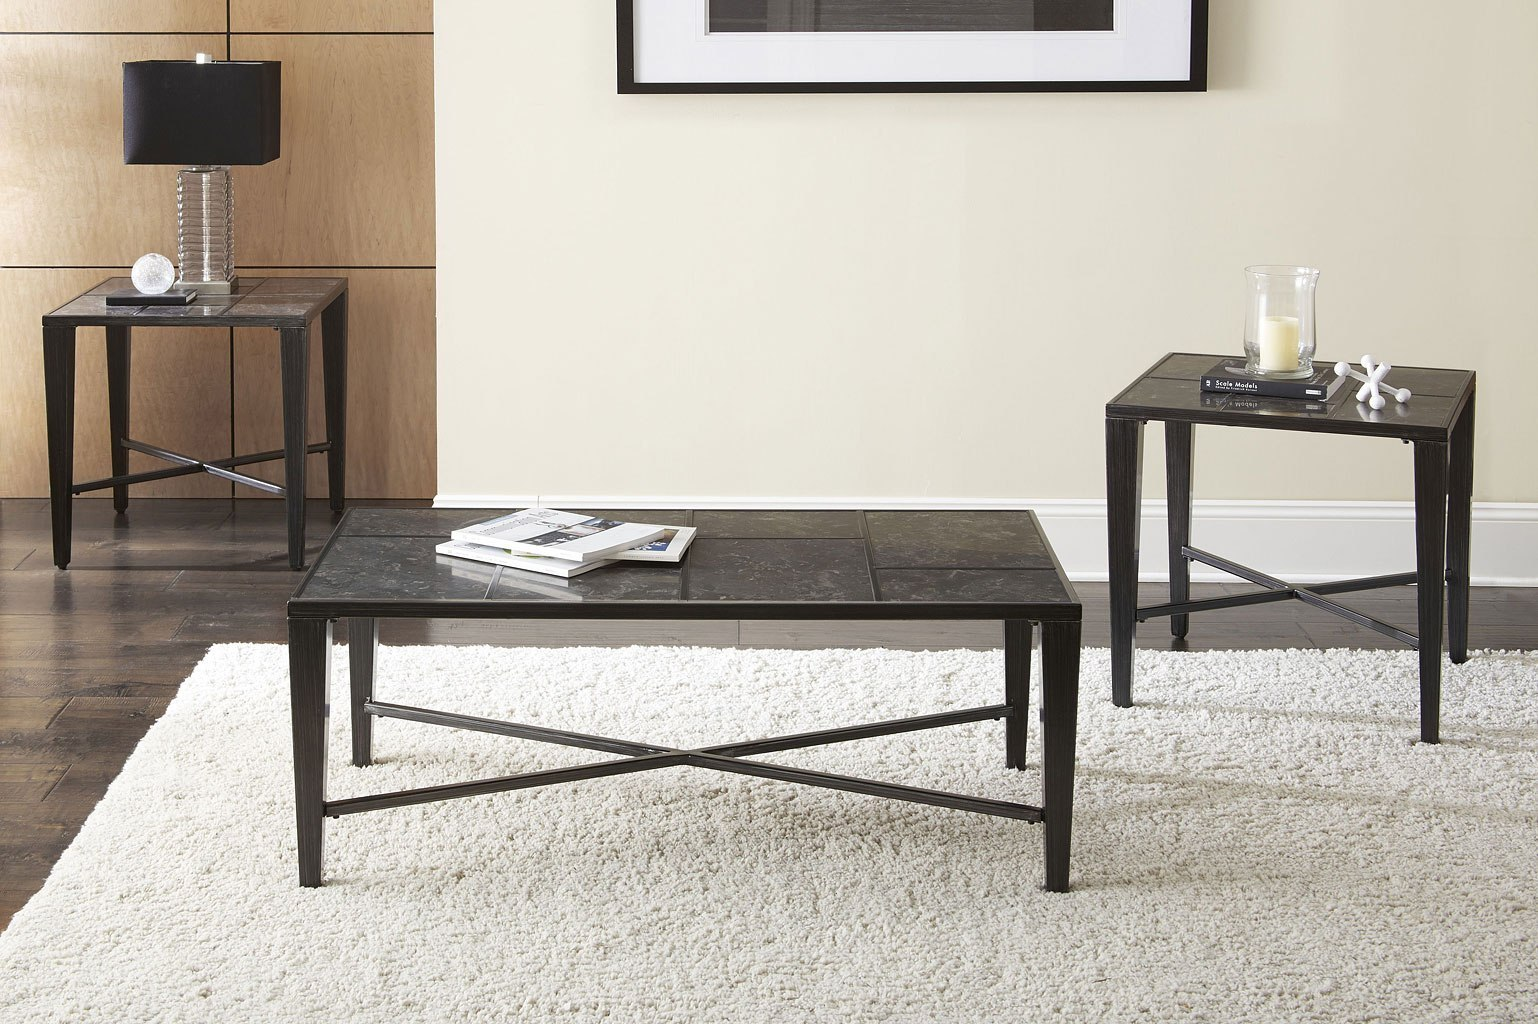 Baxter bluestone 3 piece occasional table set occasional and accent furniture living